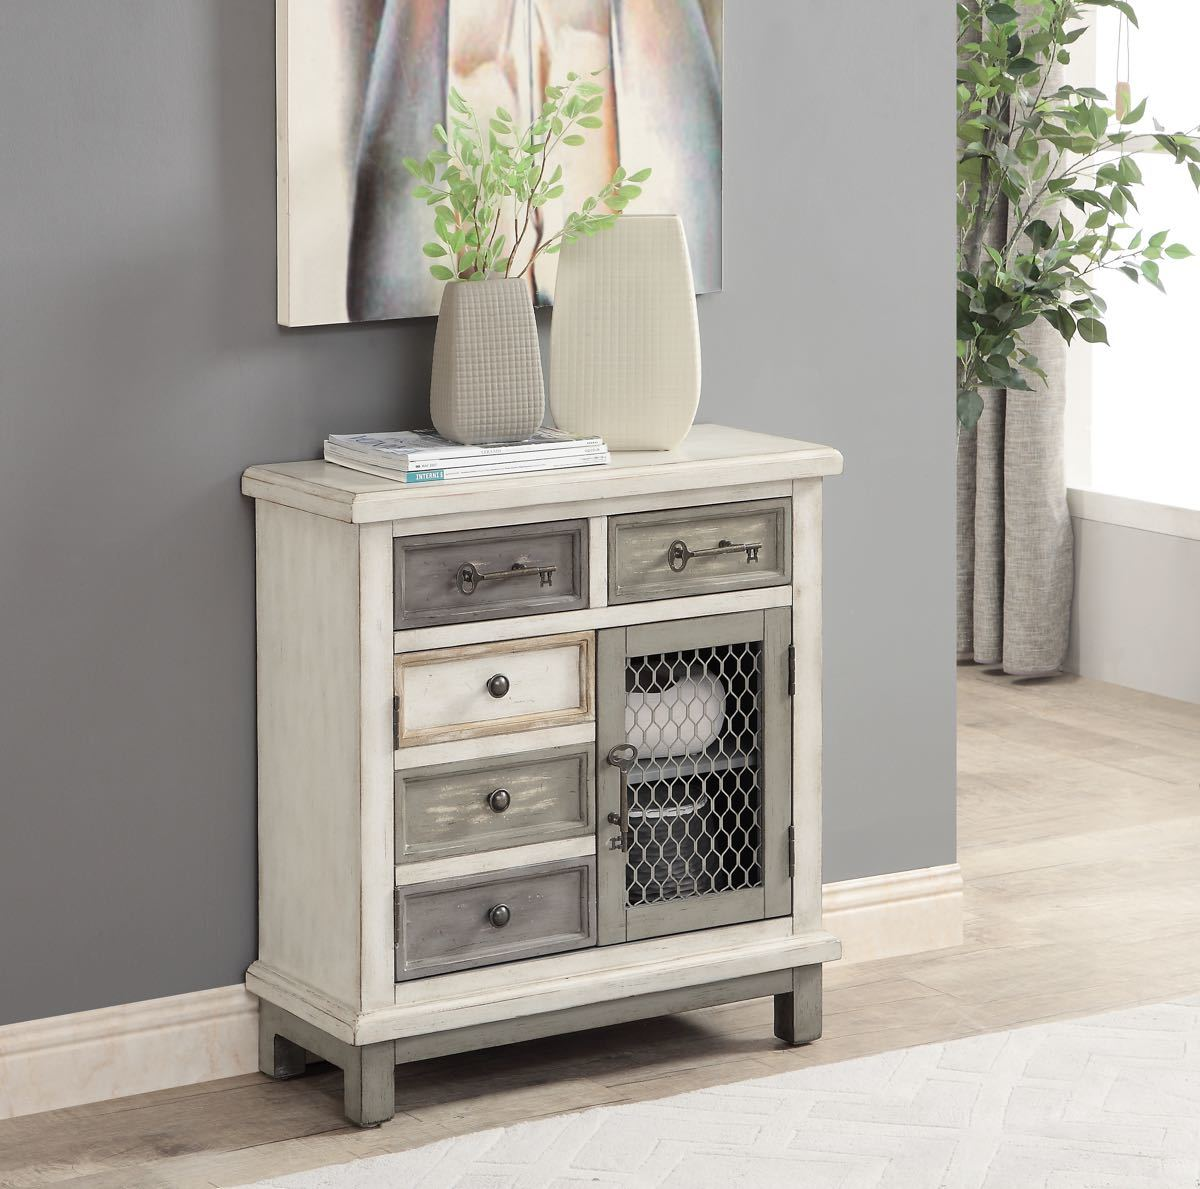 Keystone Multi Color Cabinet My Furniture Place